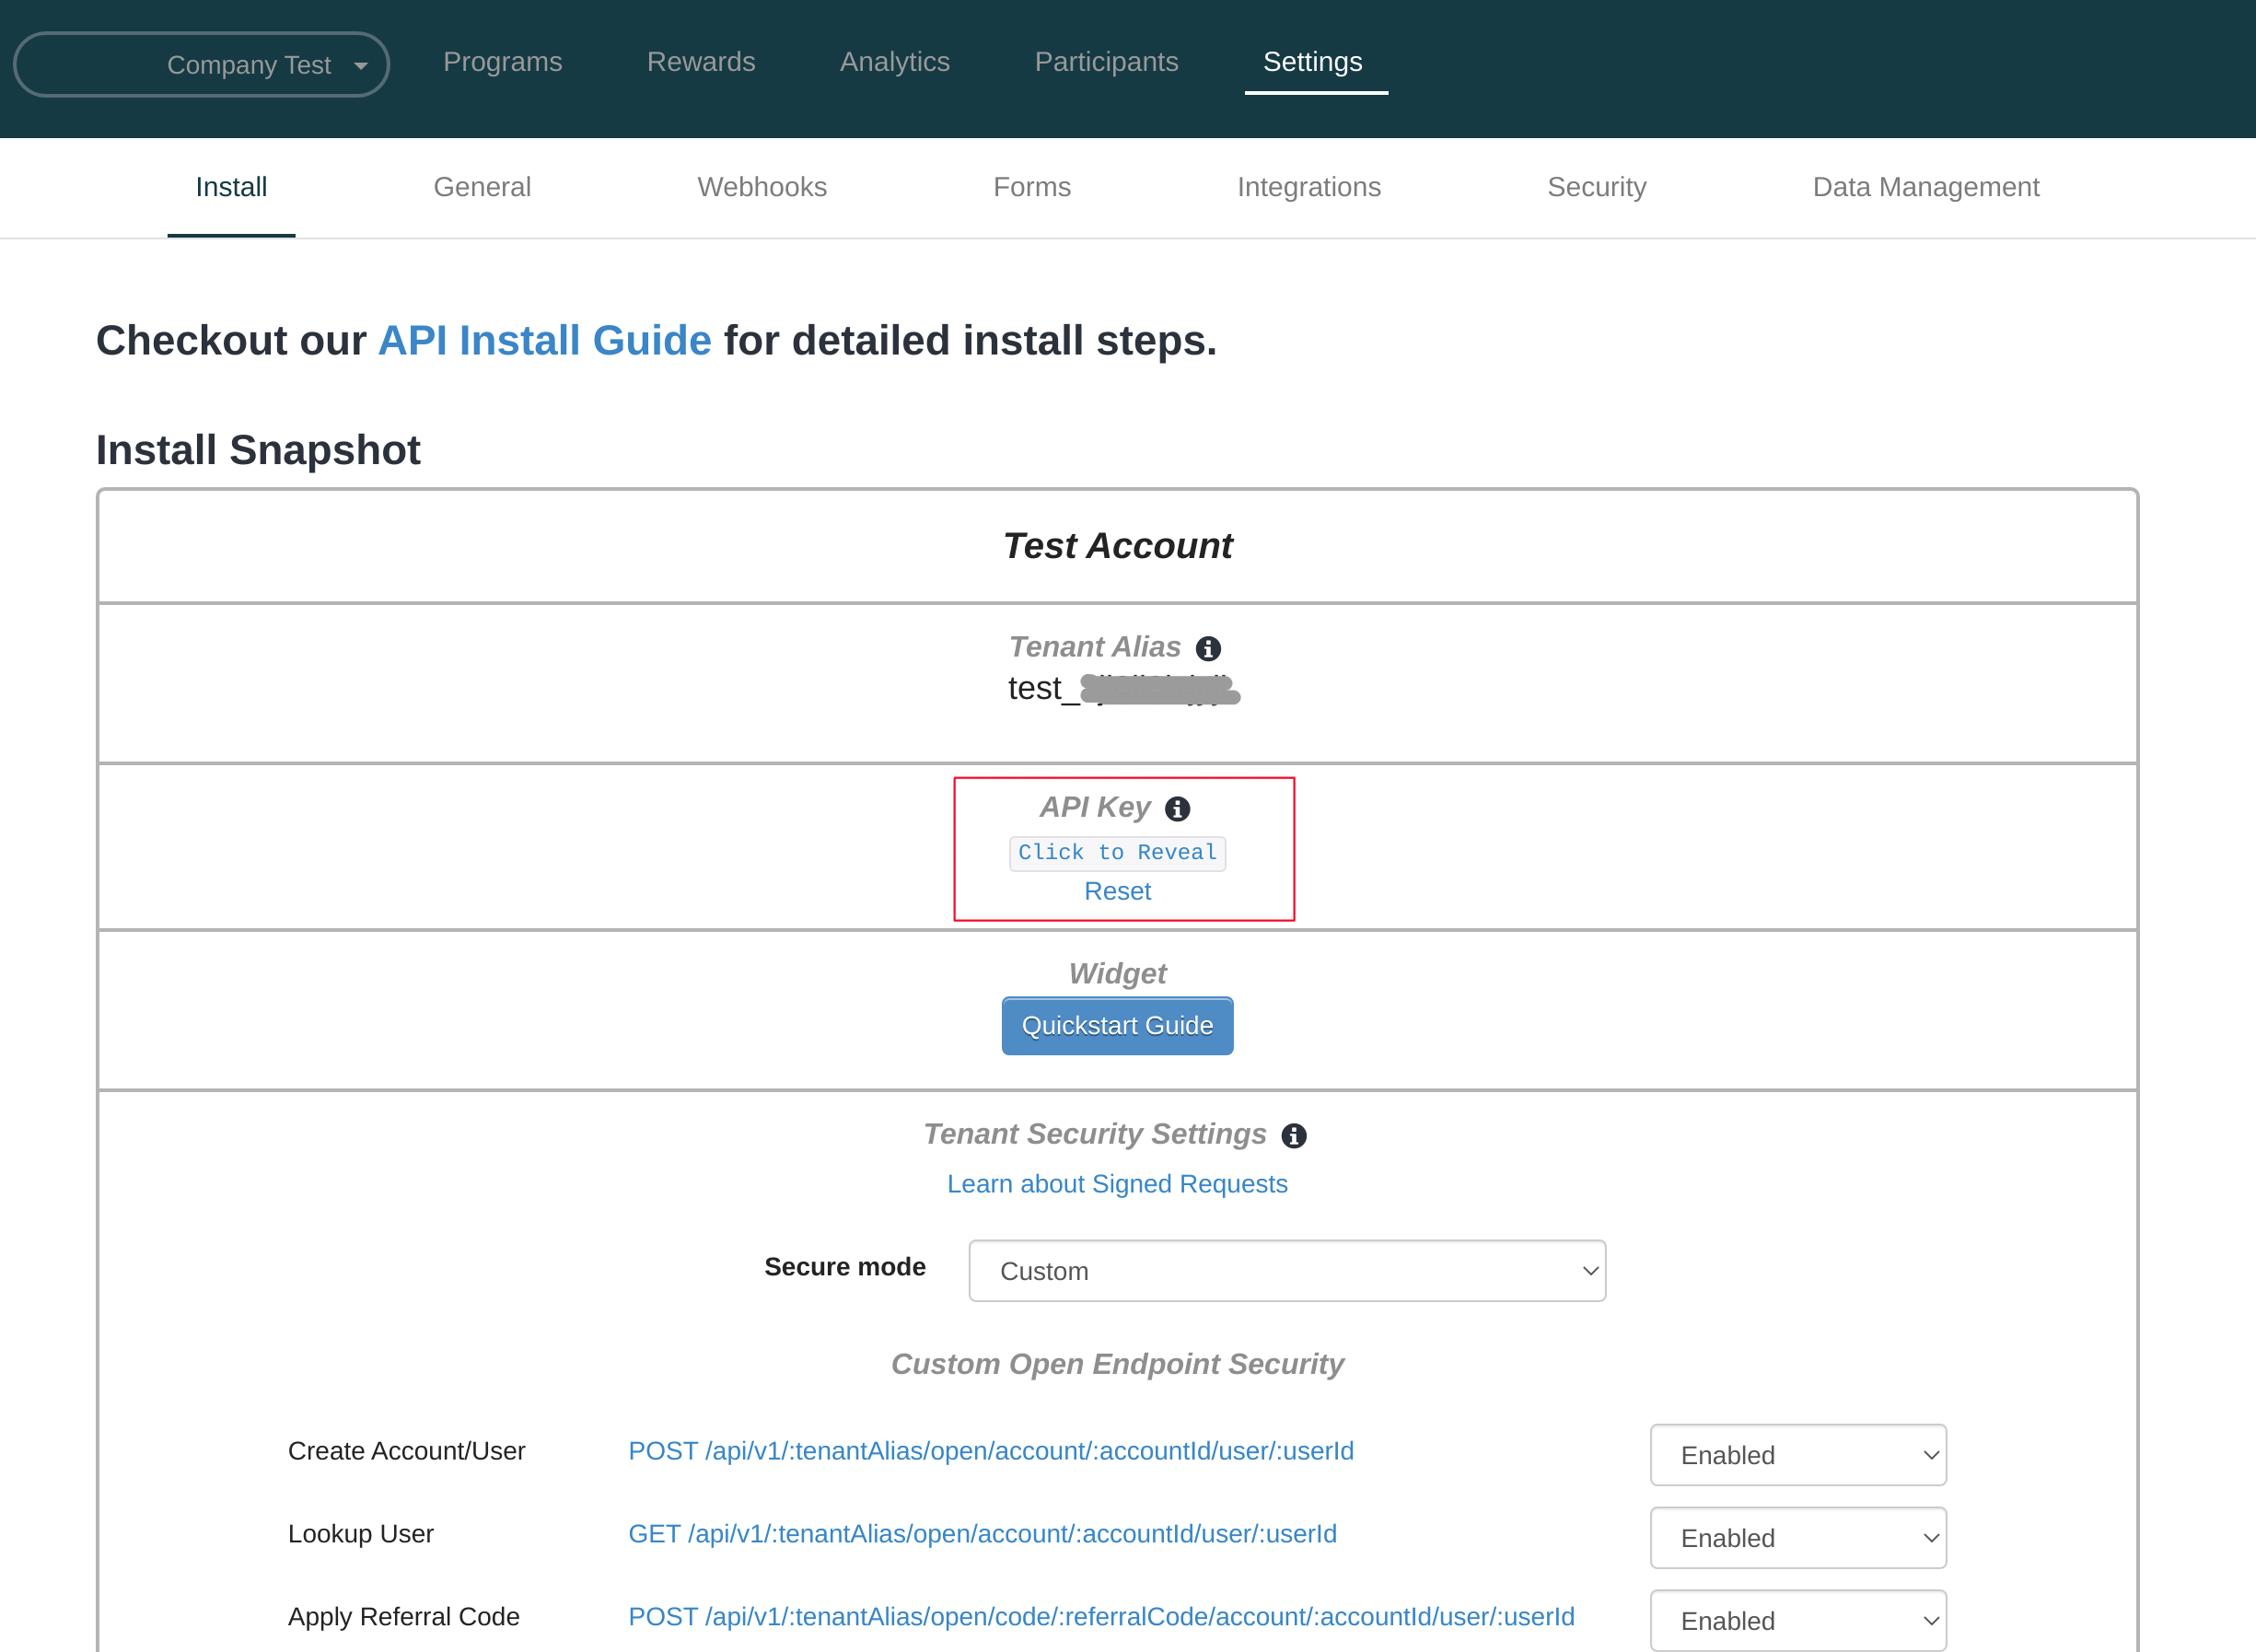 Find your Tenant API Key on the Install page of the Settings in the portal